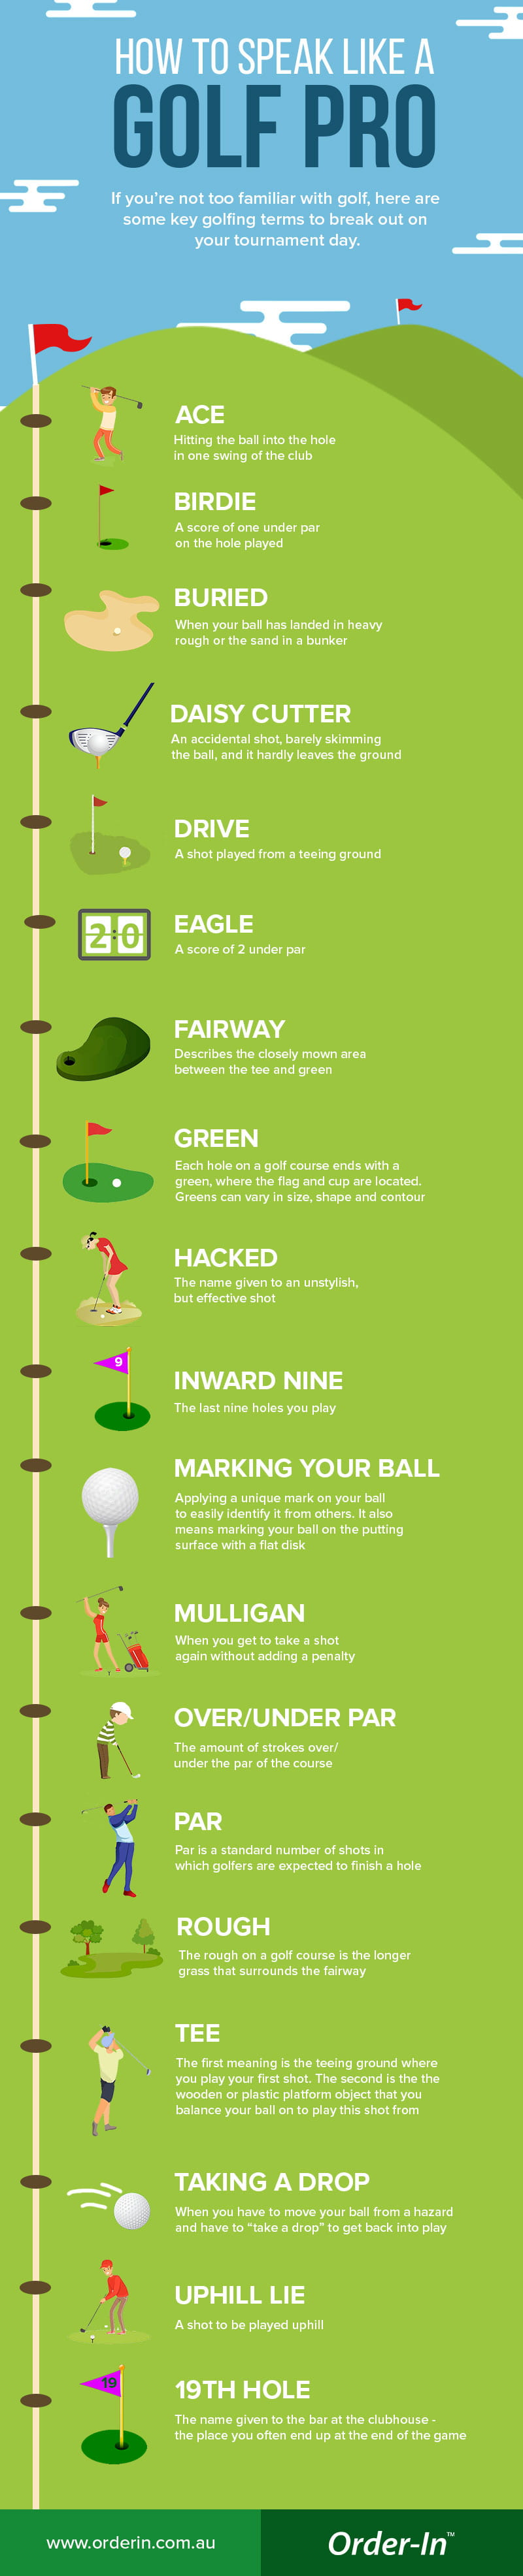 common golf terms infographic